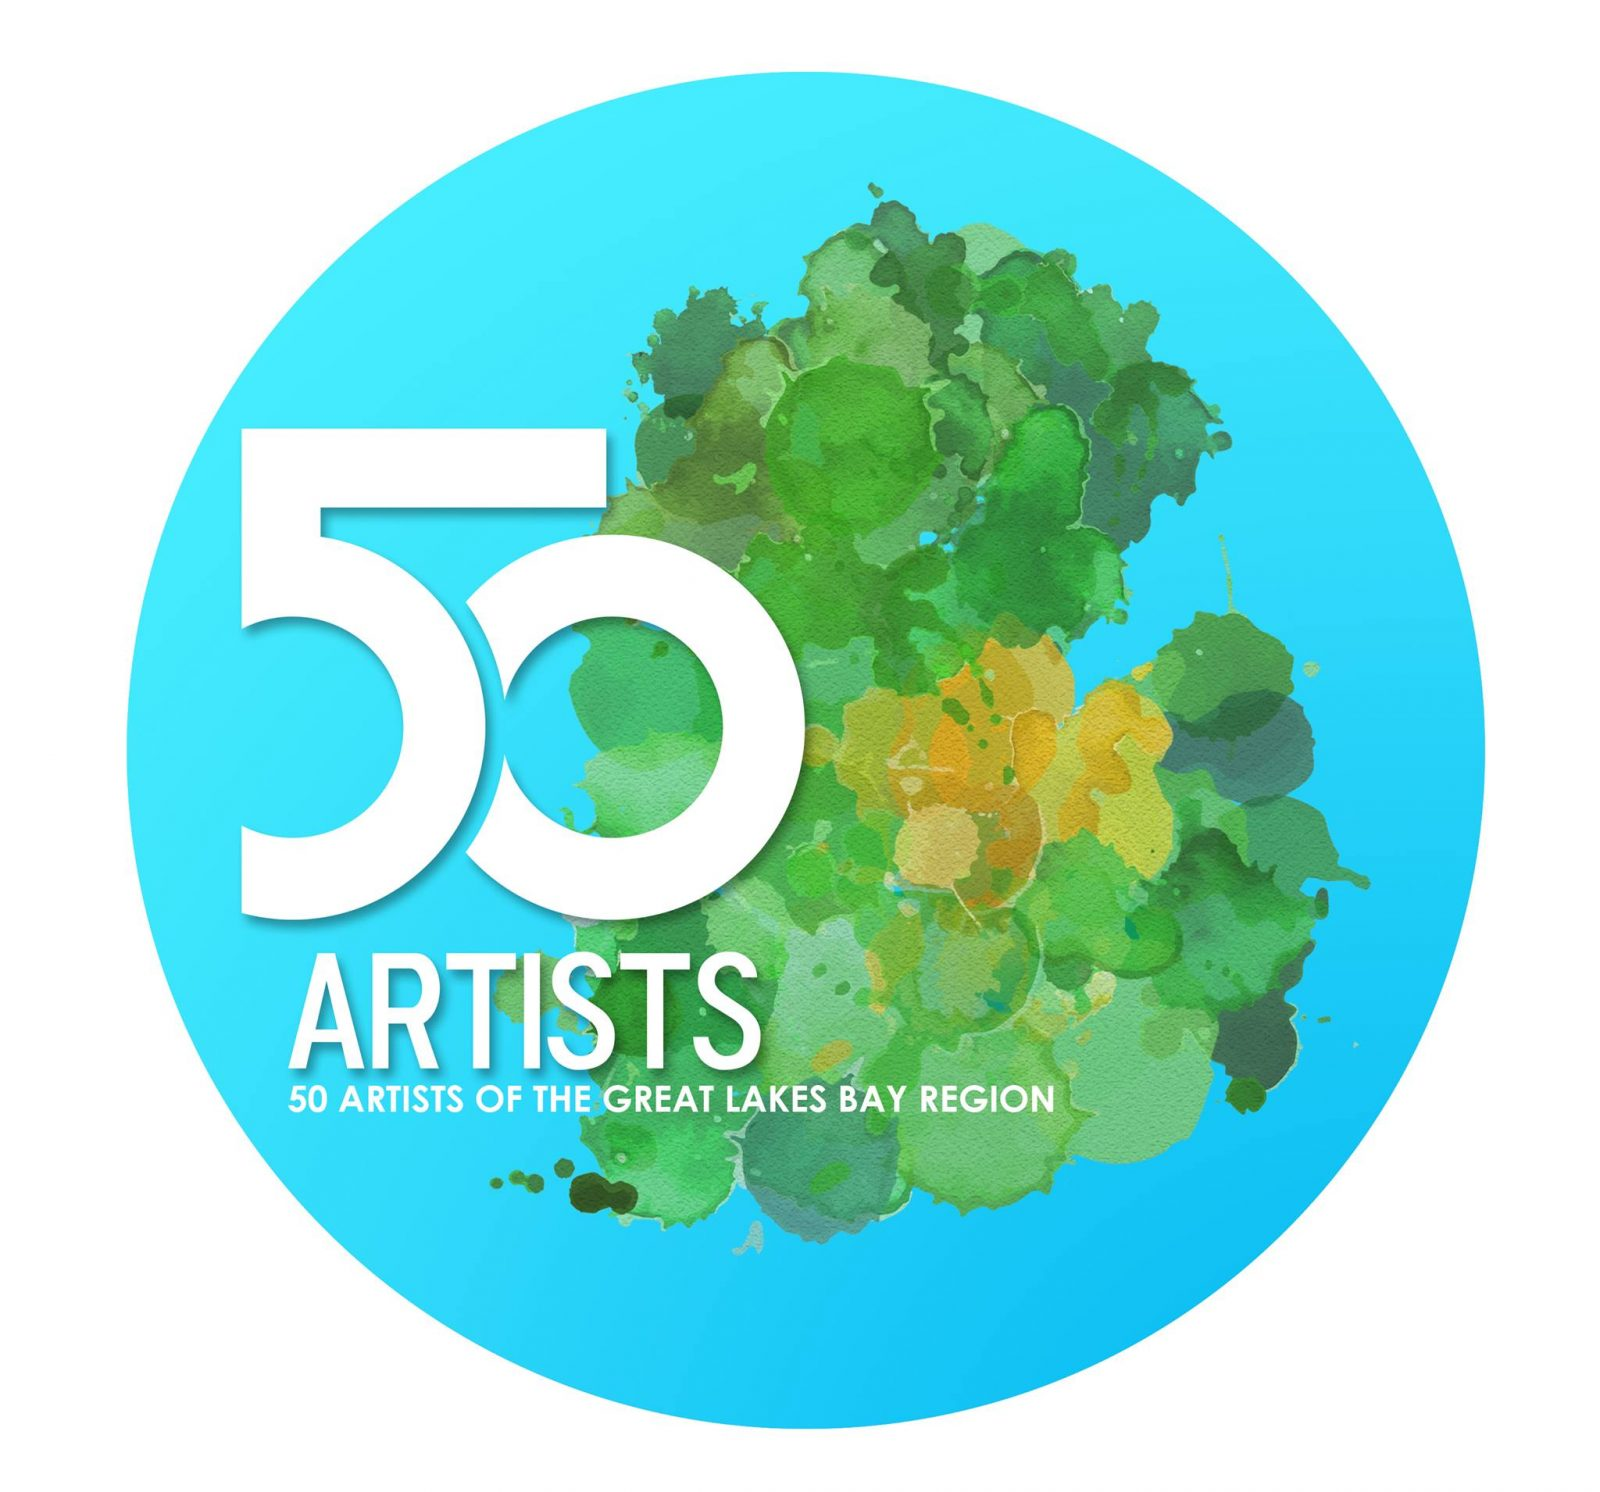 Call for Artists: 50 Artists of the Great Lakes Bay Region